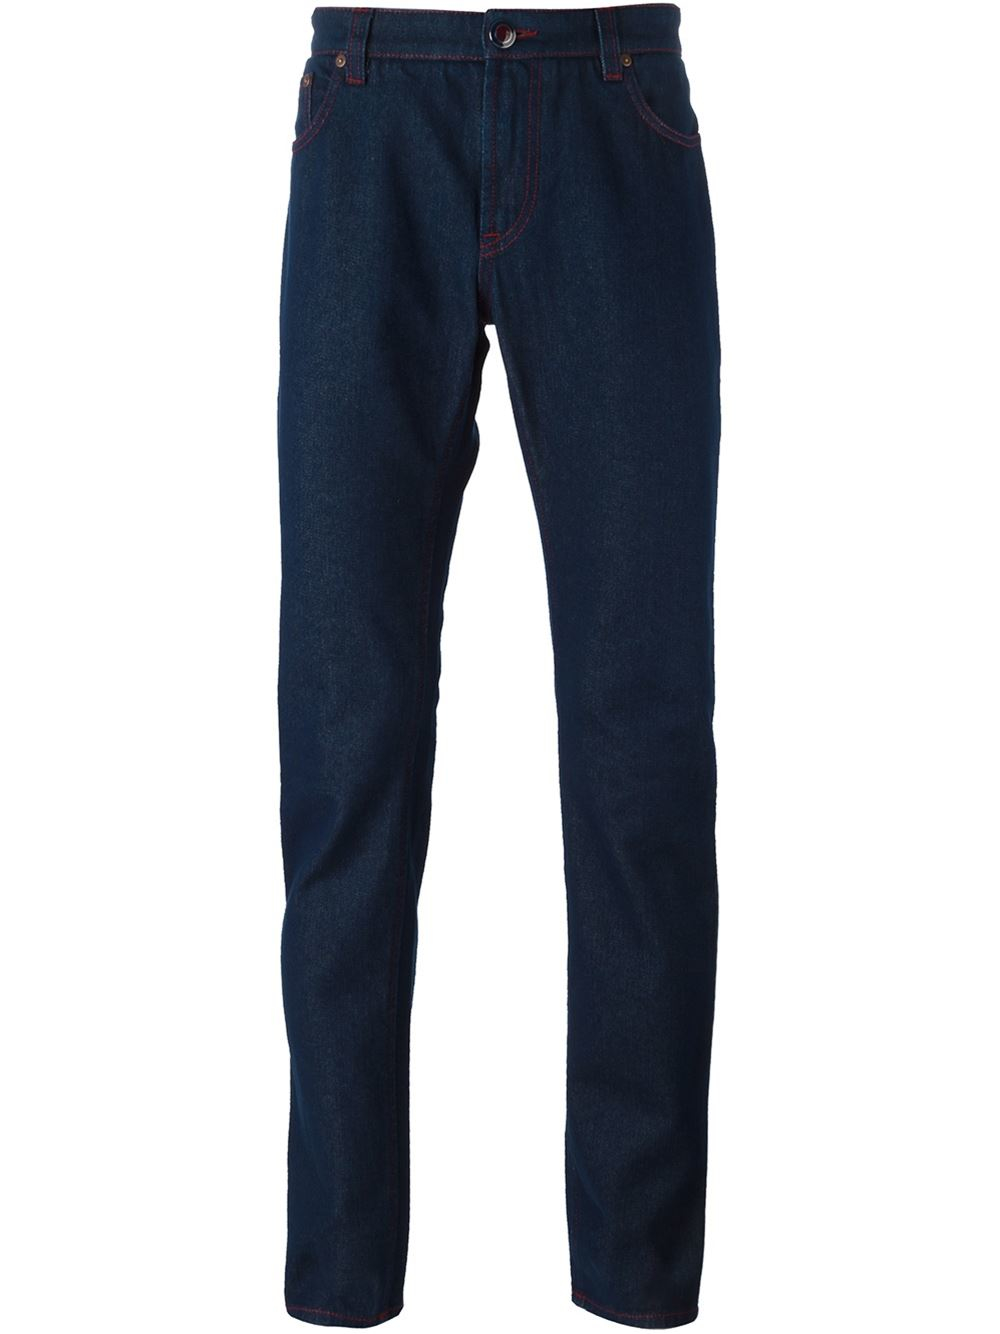 etro slim fit jeans in blue for men lyst. Black Bedroom Furniture Sets. Home Design Ideas